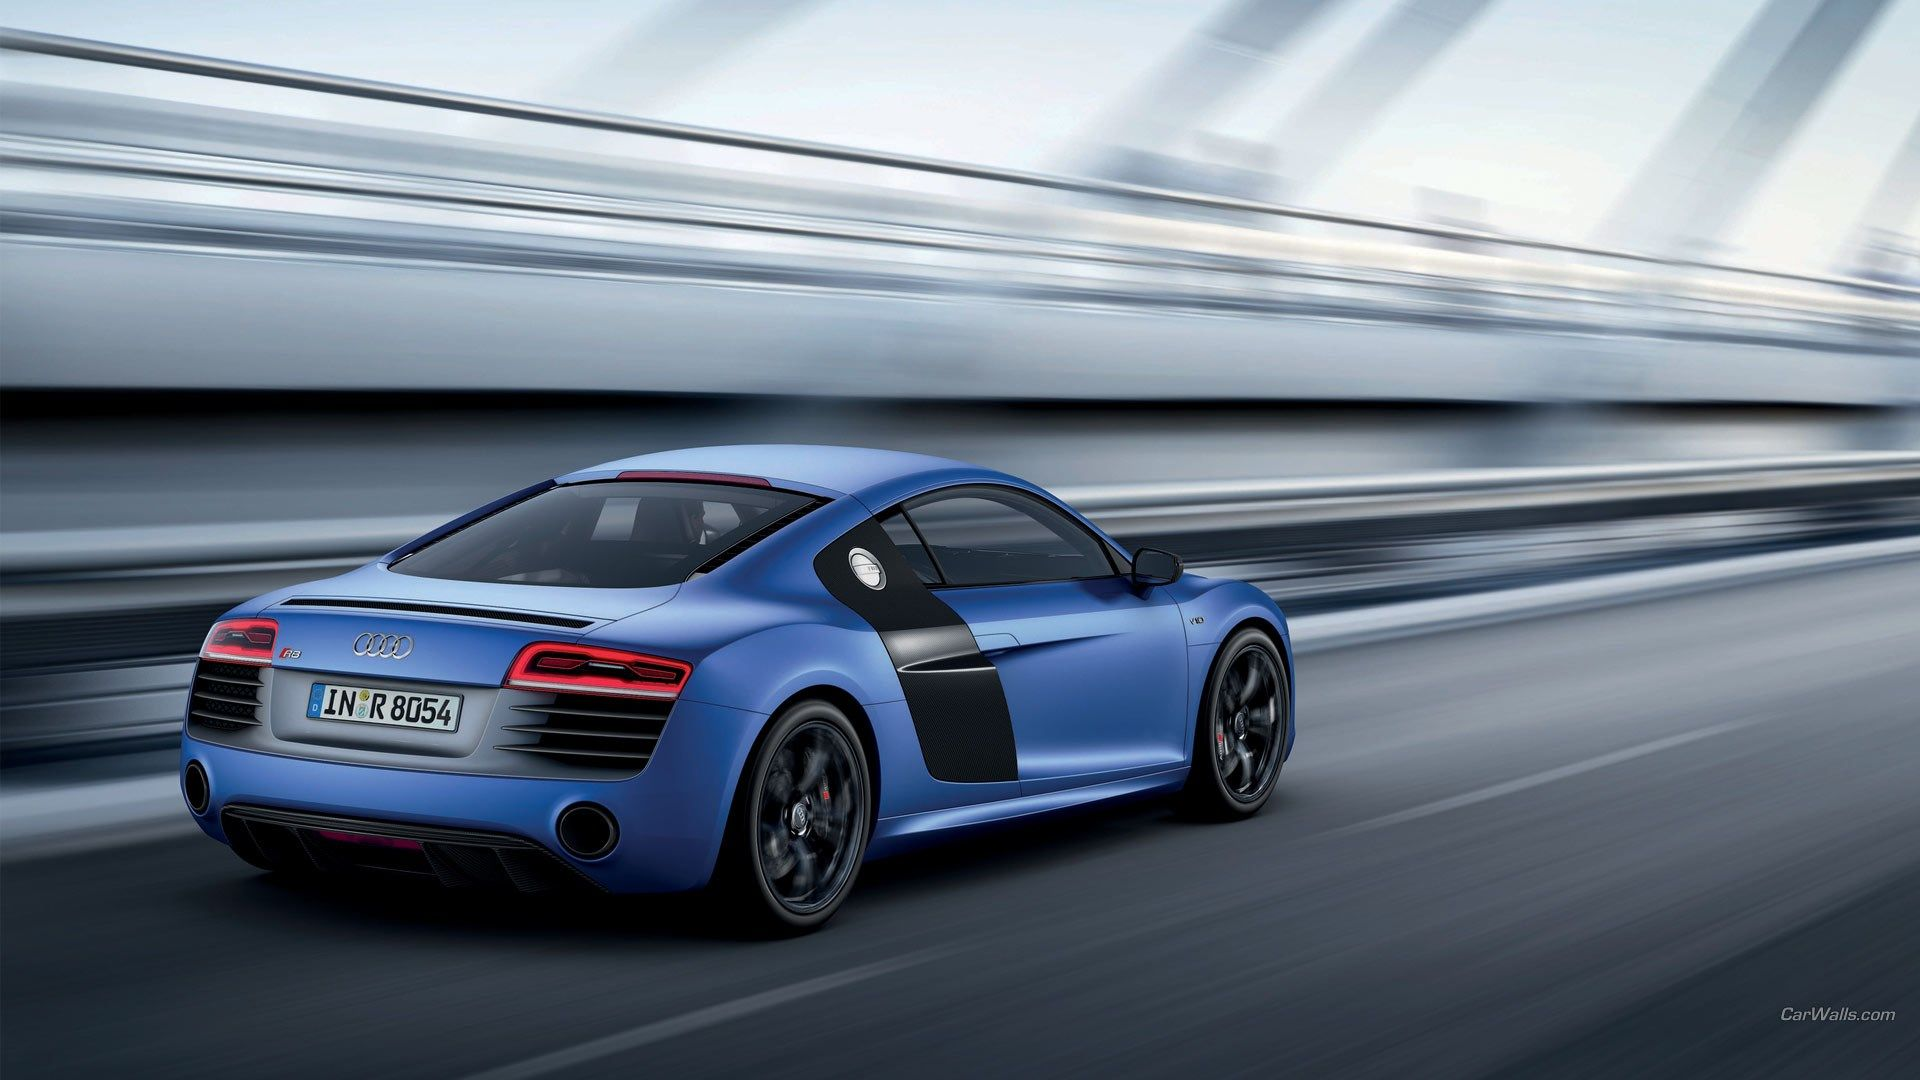 Audi R8 Pictures For Desktop 1920x1080 224 KB